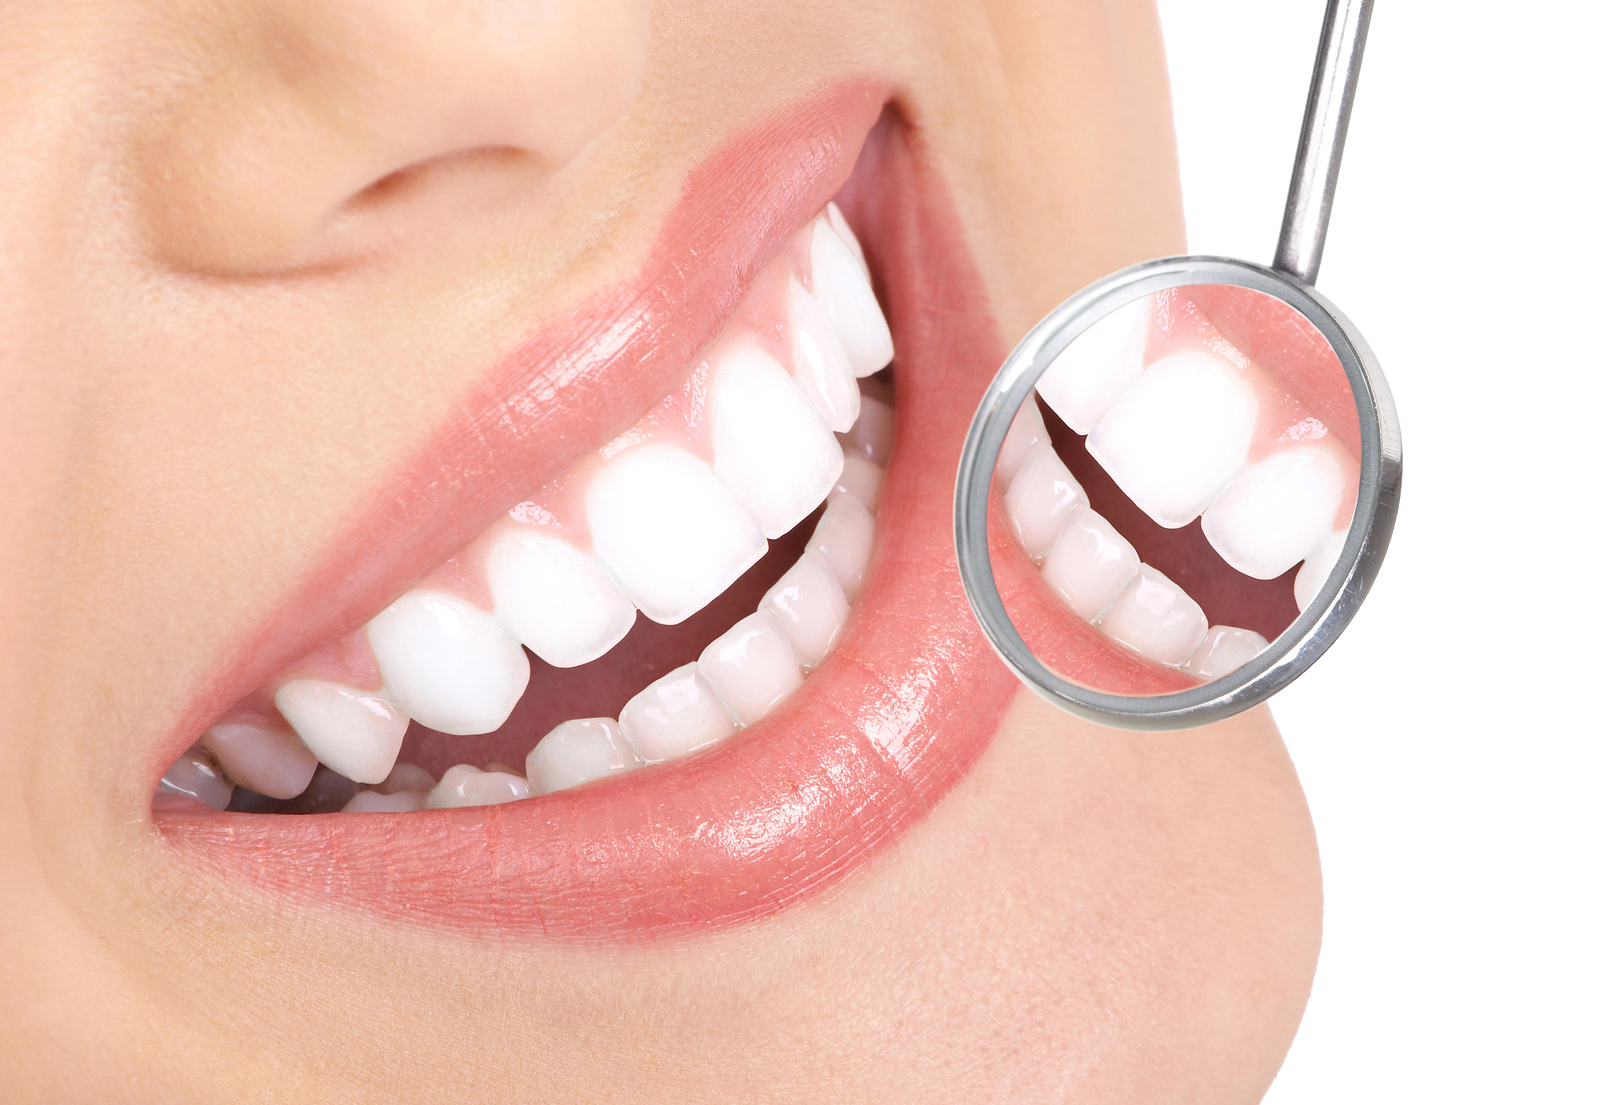 Teeth Smile Png Hd - Dentist Smile Png Hd   Png Hd Teeth Smile, Transparent background PNG HD thumbnail